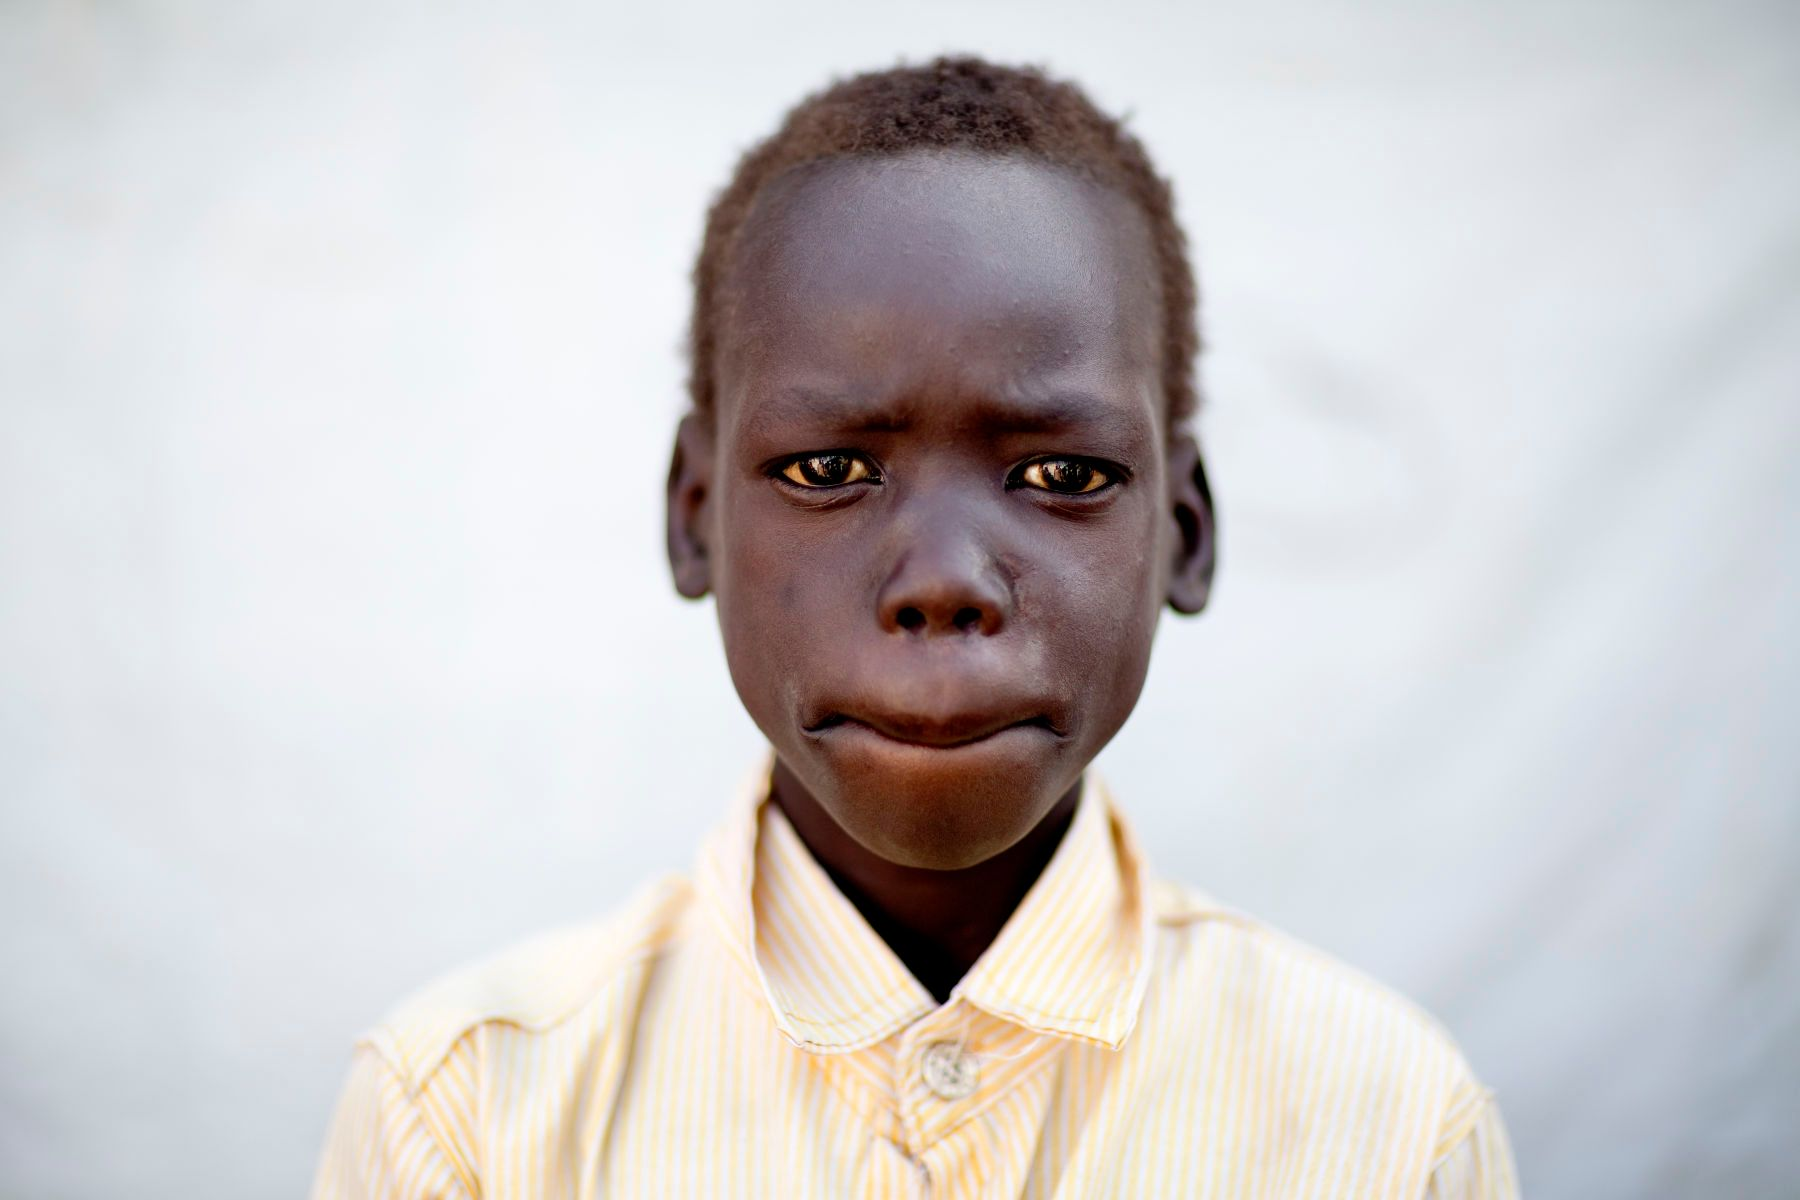 Malakal POC Camp Portraits